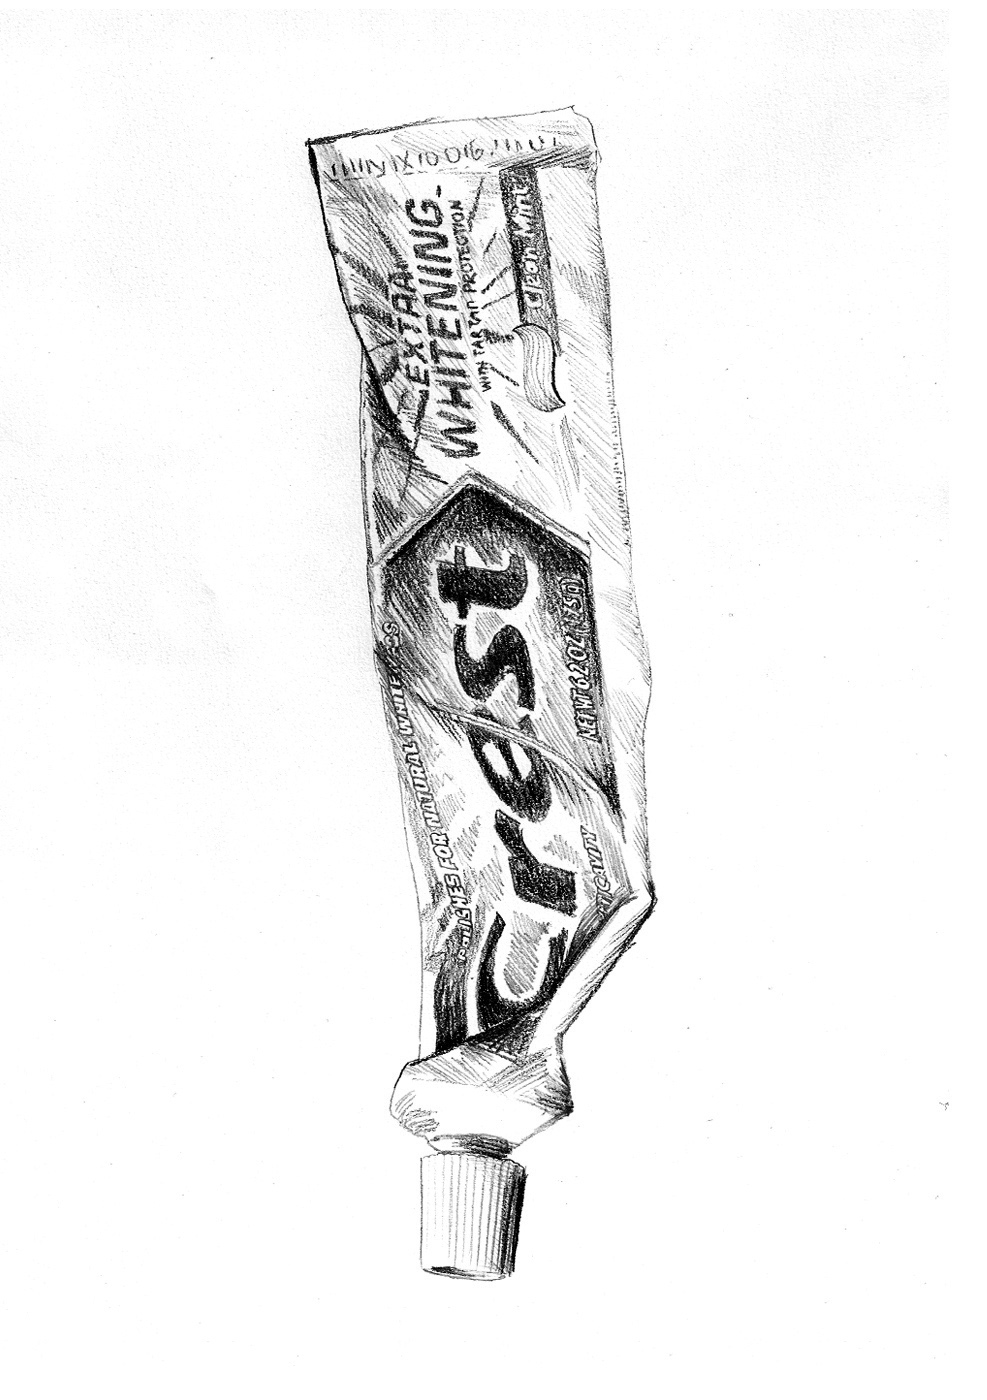 fig. 4. Toothpaste